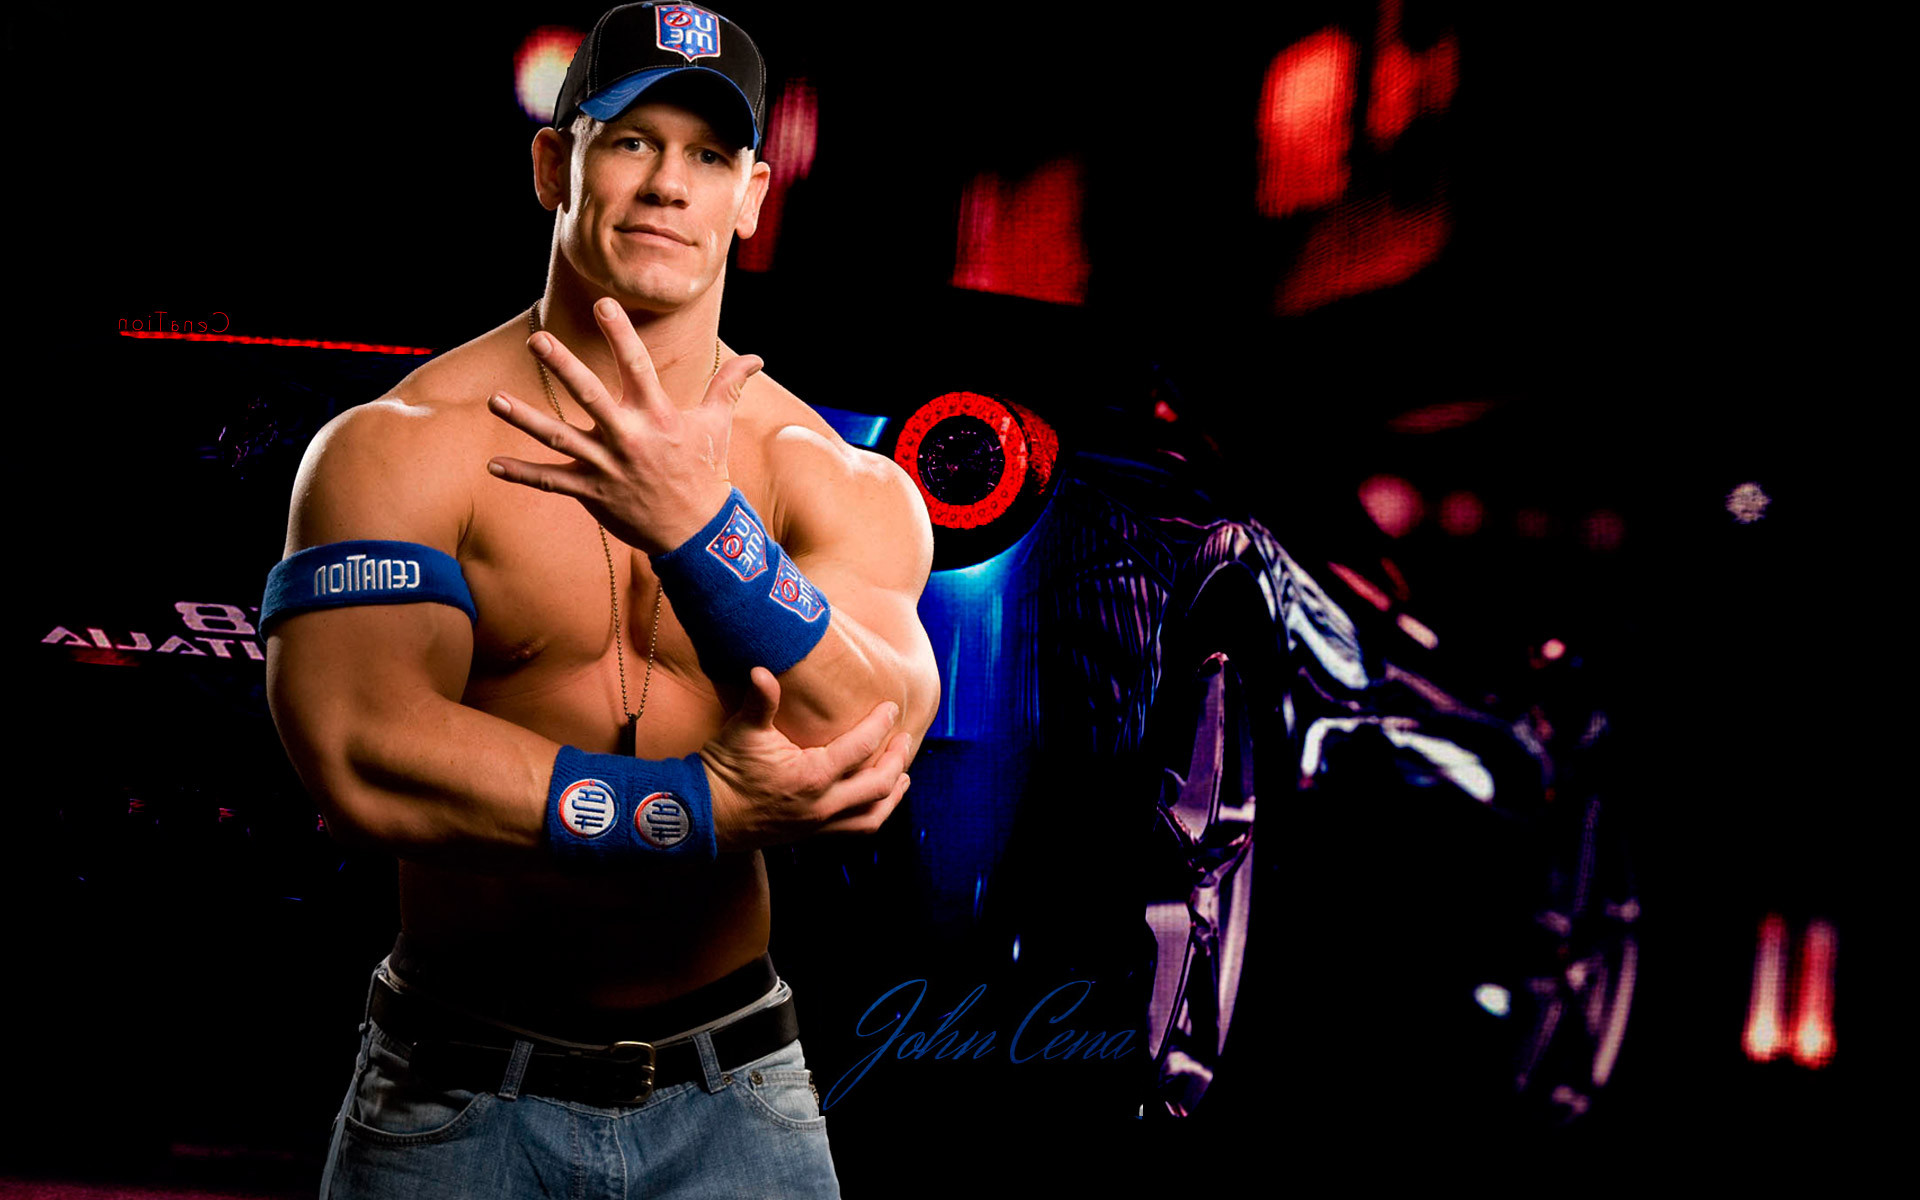 John Cena Full Hd Wallpapers 62 Background Pictures